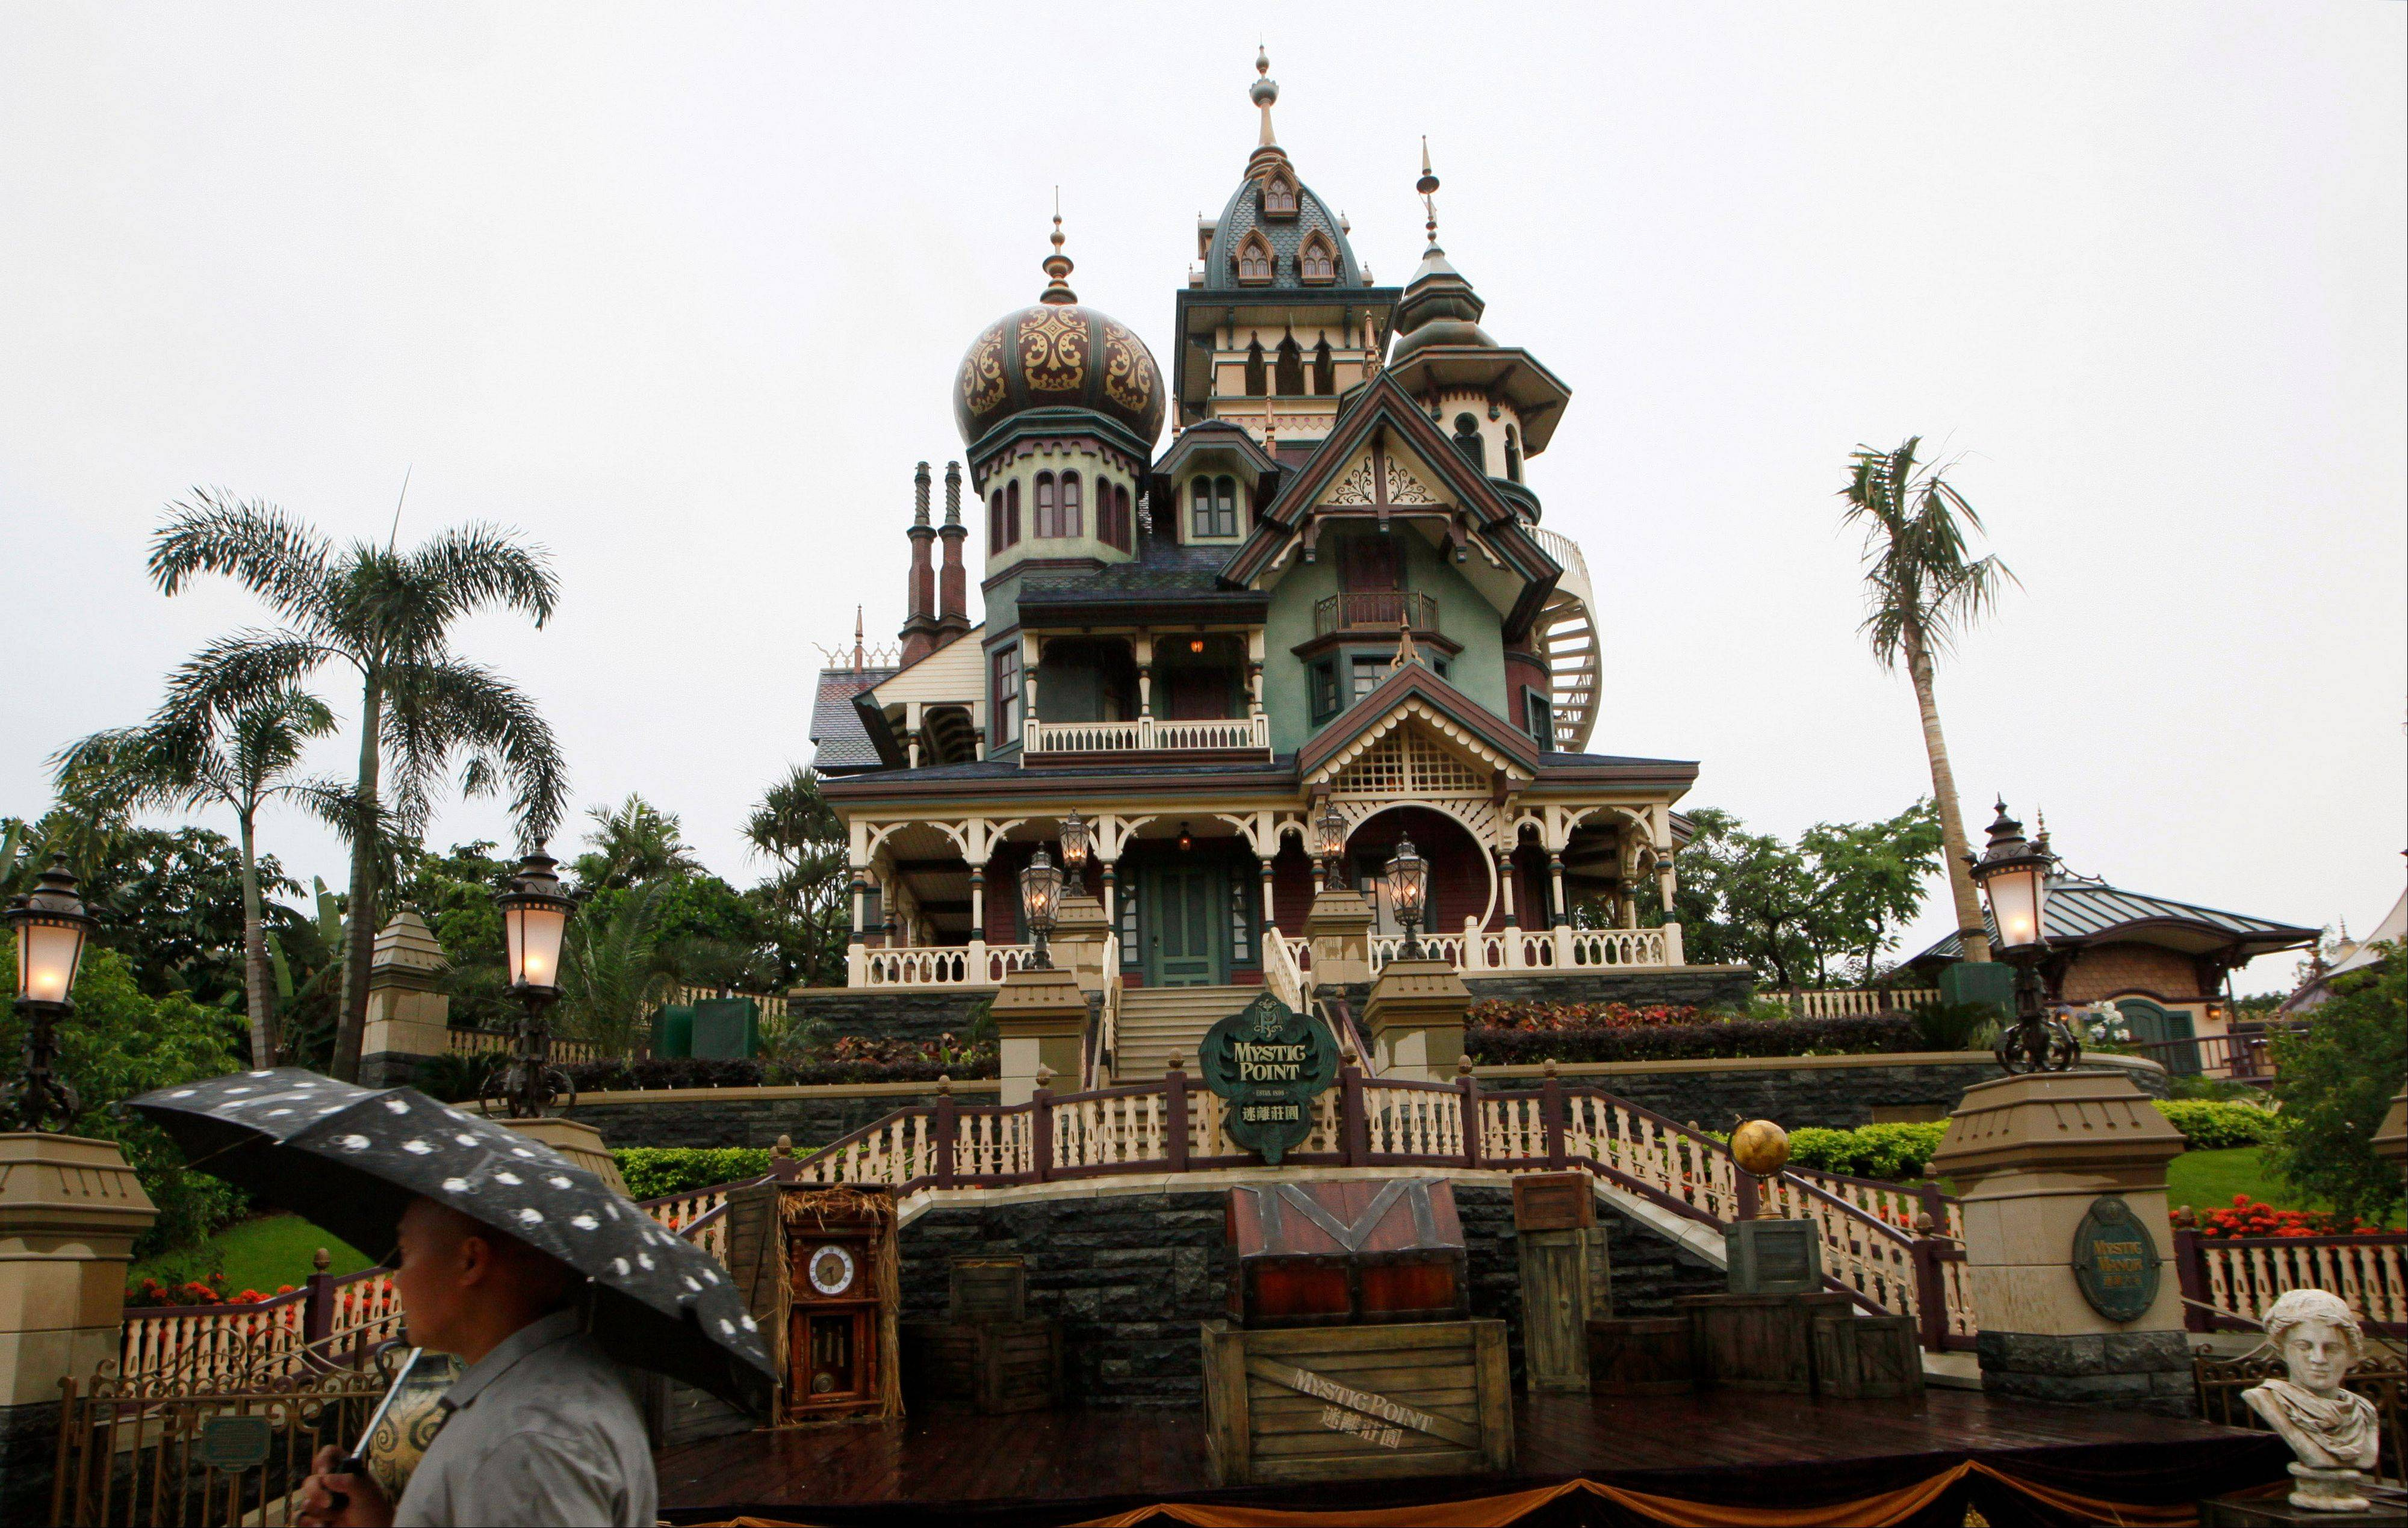 In this Thursday, May 16, 2013 file photo, a man walks past the Mystic Manor one day before the official opening for the public of the new attraction Mystic Manor at the Hong Kong Disneyland. Hong Kong Disneyland is adding an Iron Man-themed area in the hopes that the Marvel superhero's success at the Chinese box office will help draw more visitors to the underachieving resort. The park said Tuesday, Oct. 8 that the Iron Man Experience is planned to open by late 2016.